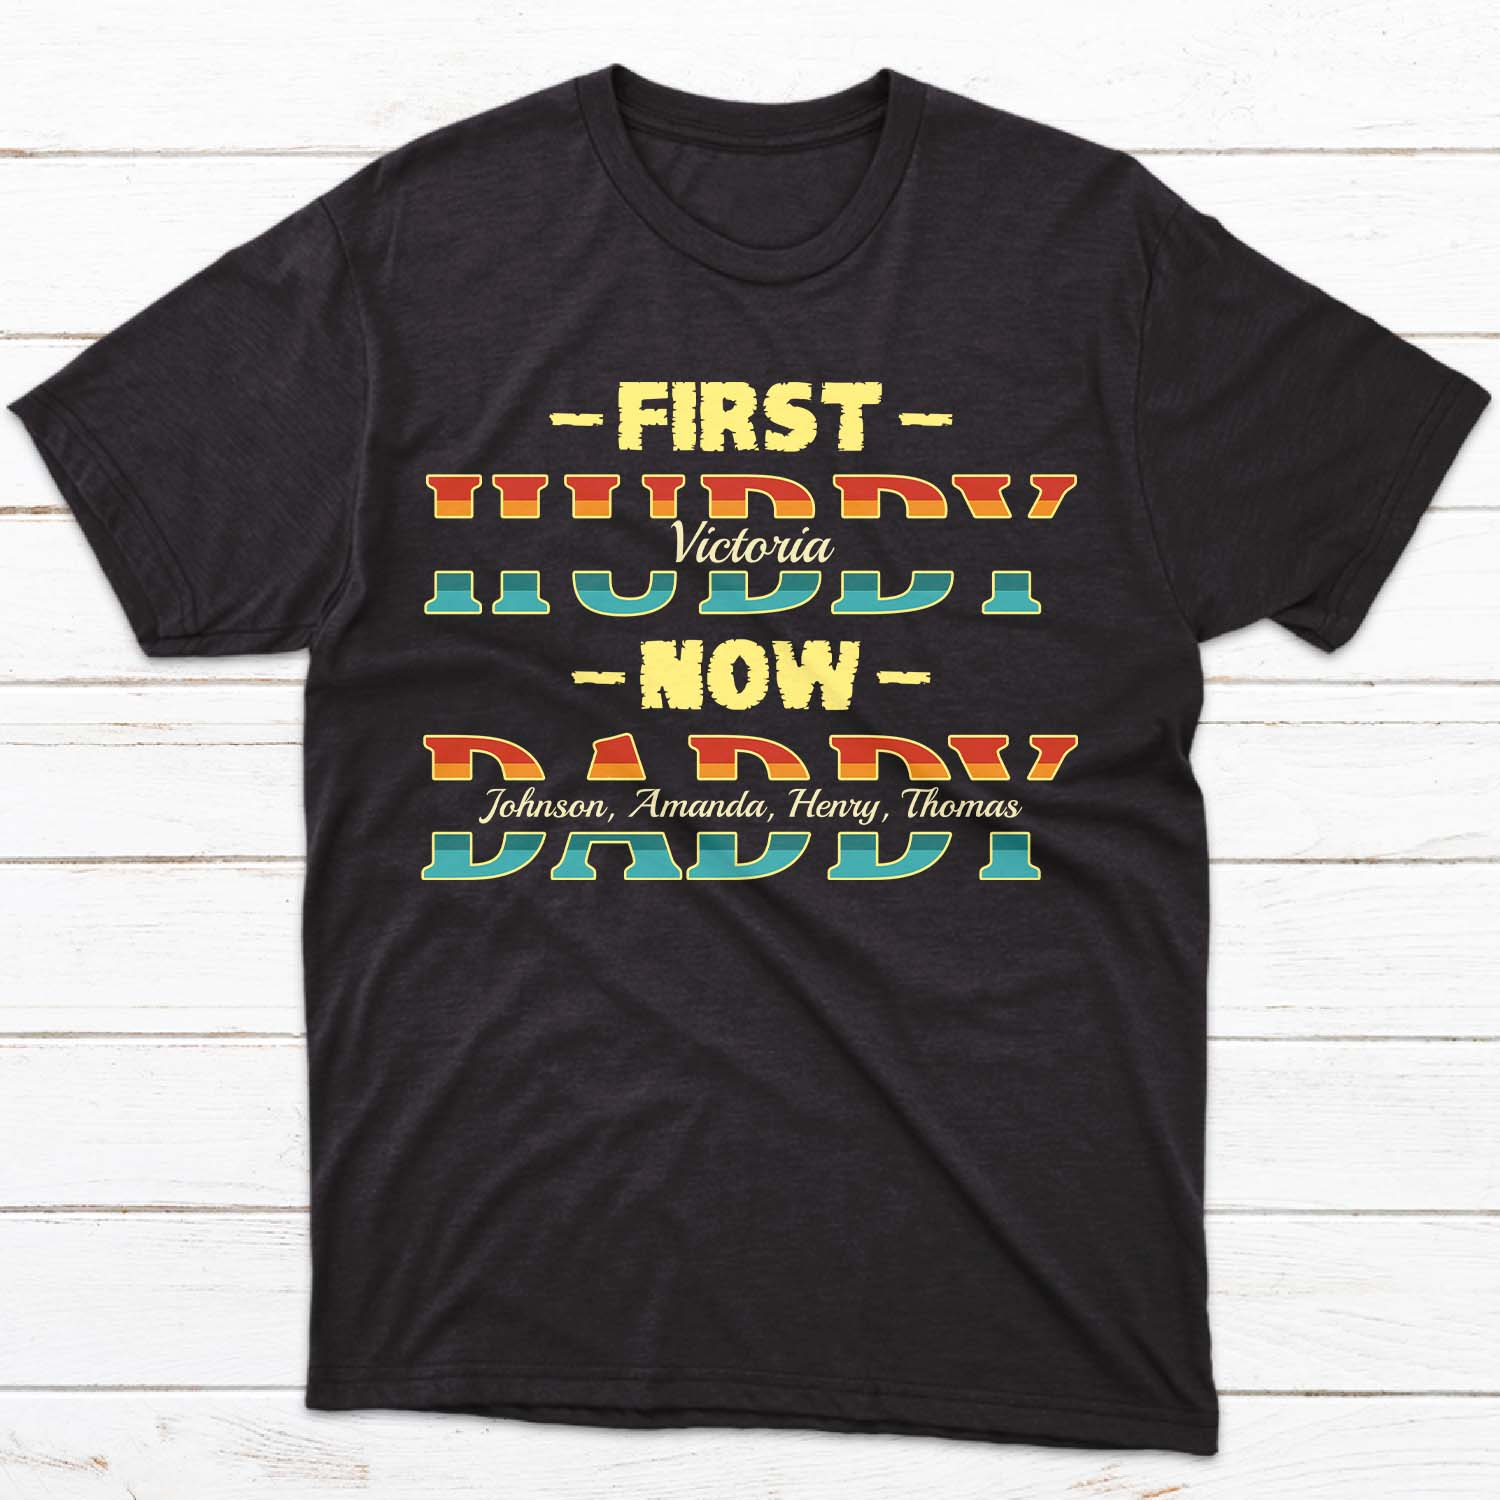 For a first-time Dad with a cute family to be proud of, you cannot go wrong with this shirt. First, he is a Hubby of his beautiful wife. Now, he is a Daddy of his babies. Made of high quality cotton, this shirt will keep him comfy while hanging out with his child, or… when he's taking a quick nap with his baby.